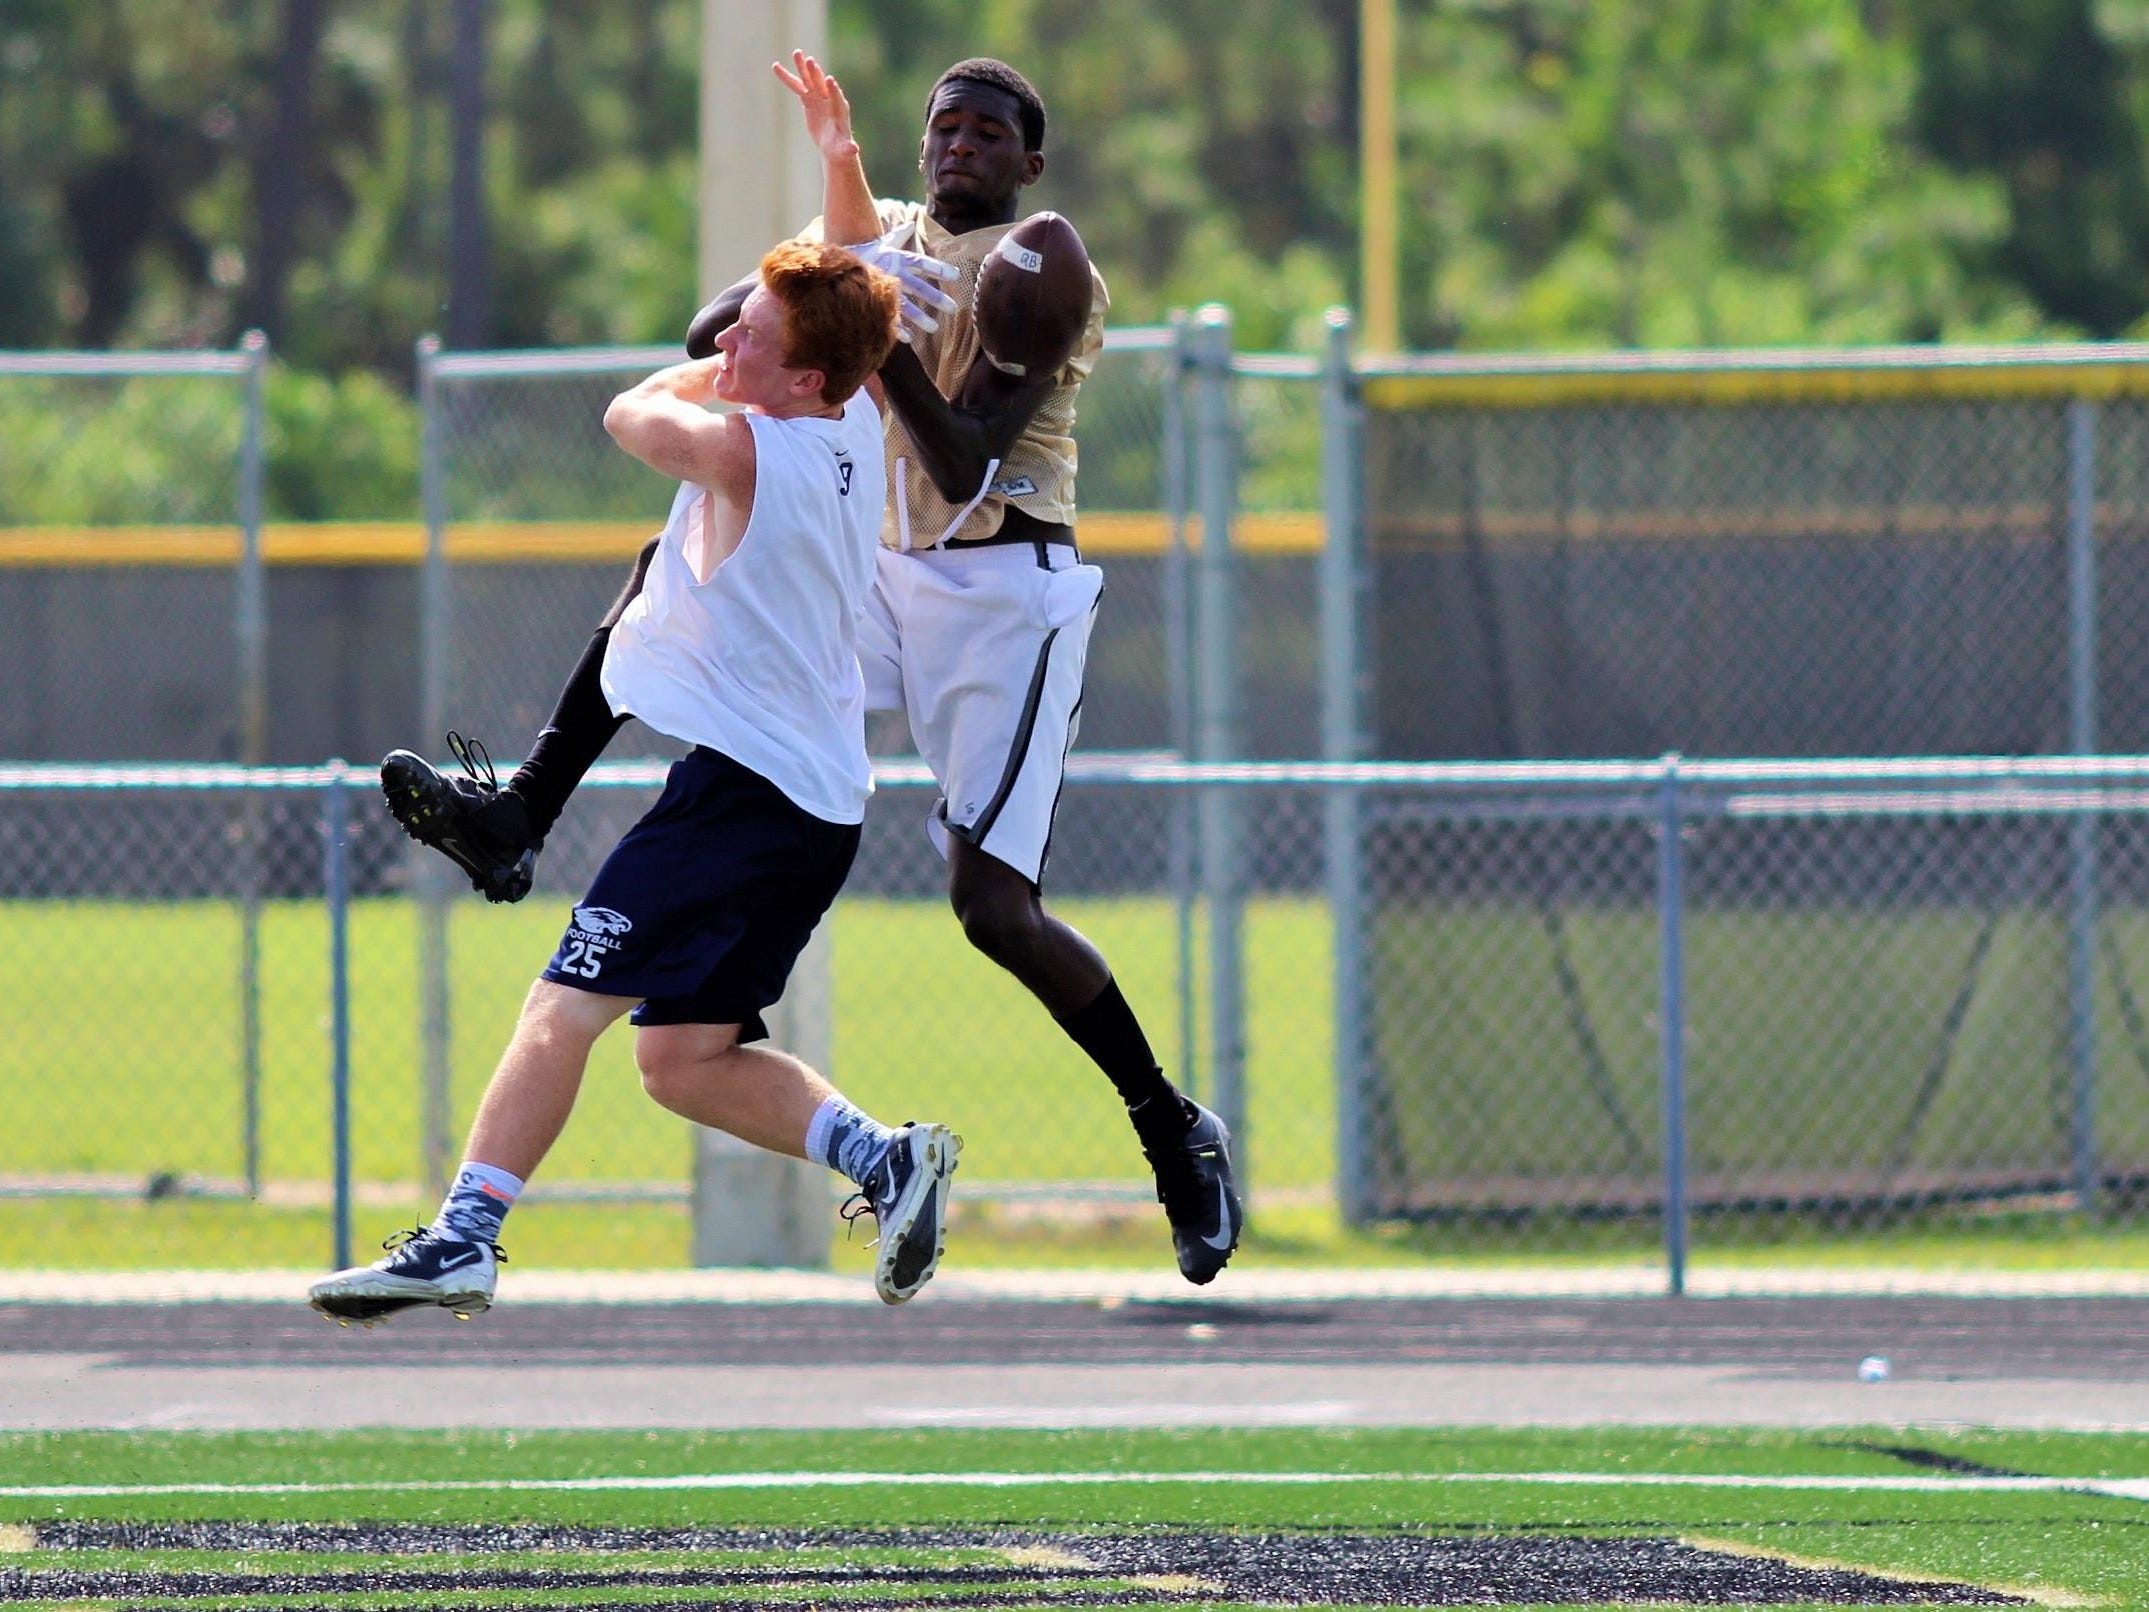 Golden Gate wide receiver Patrick Volcy goes up for a pass with a Naples defensive back during a 7-on-7 game at Golden Gate High School on July 8, 2015.